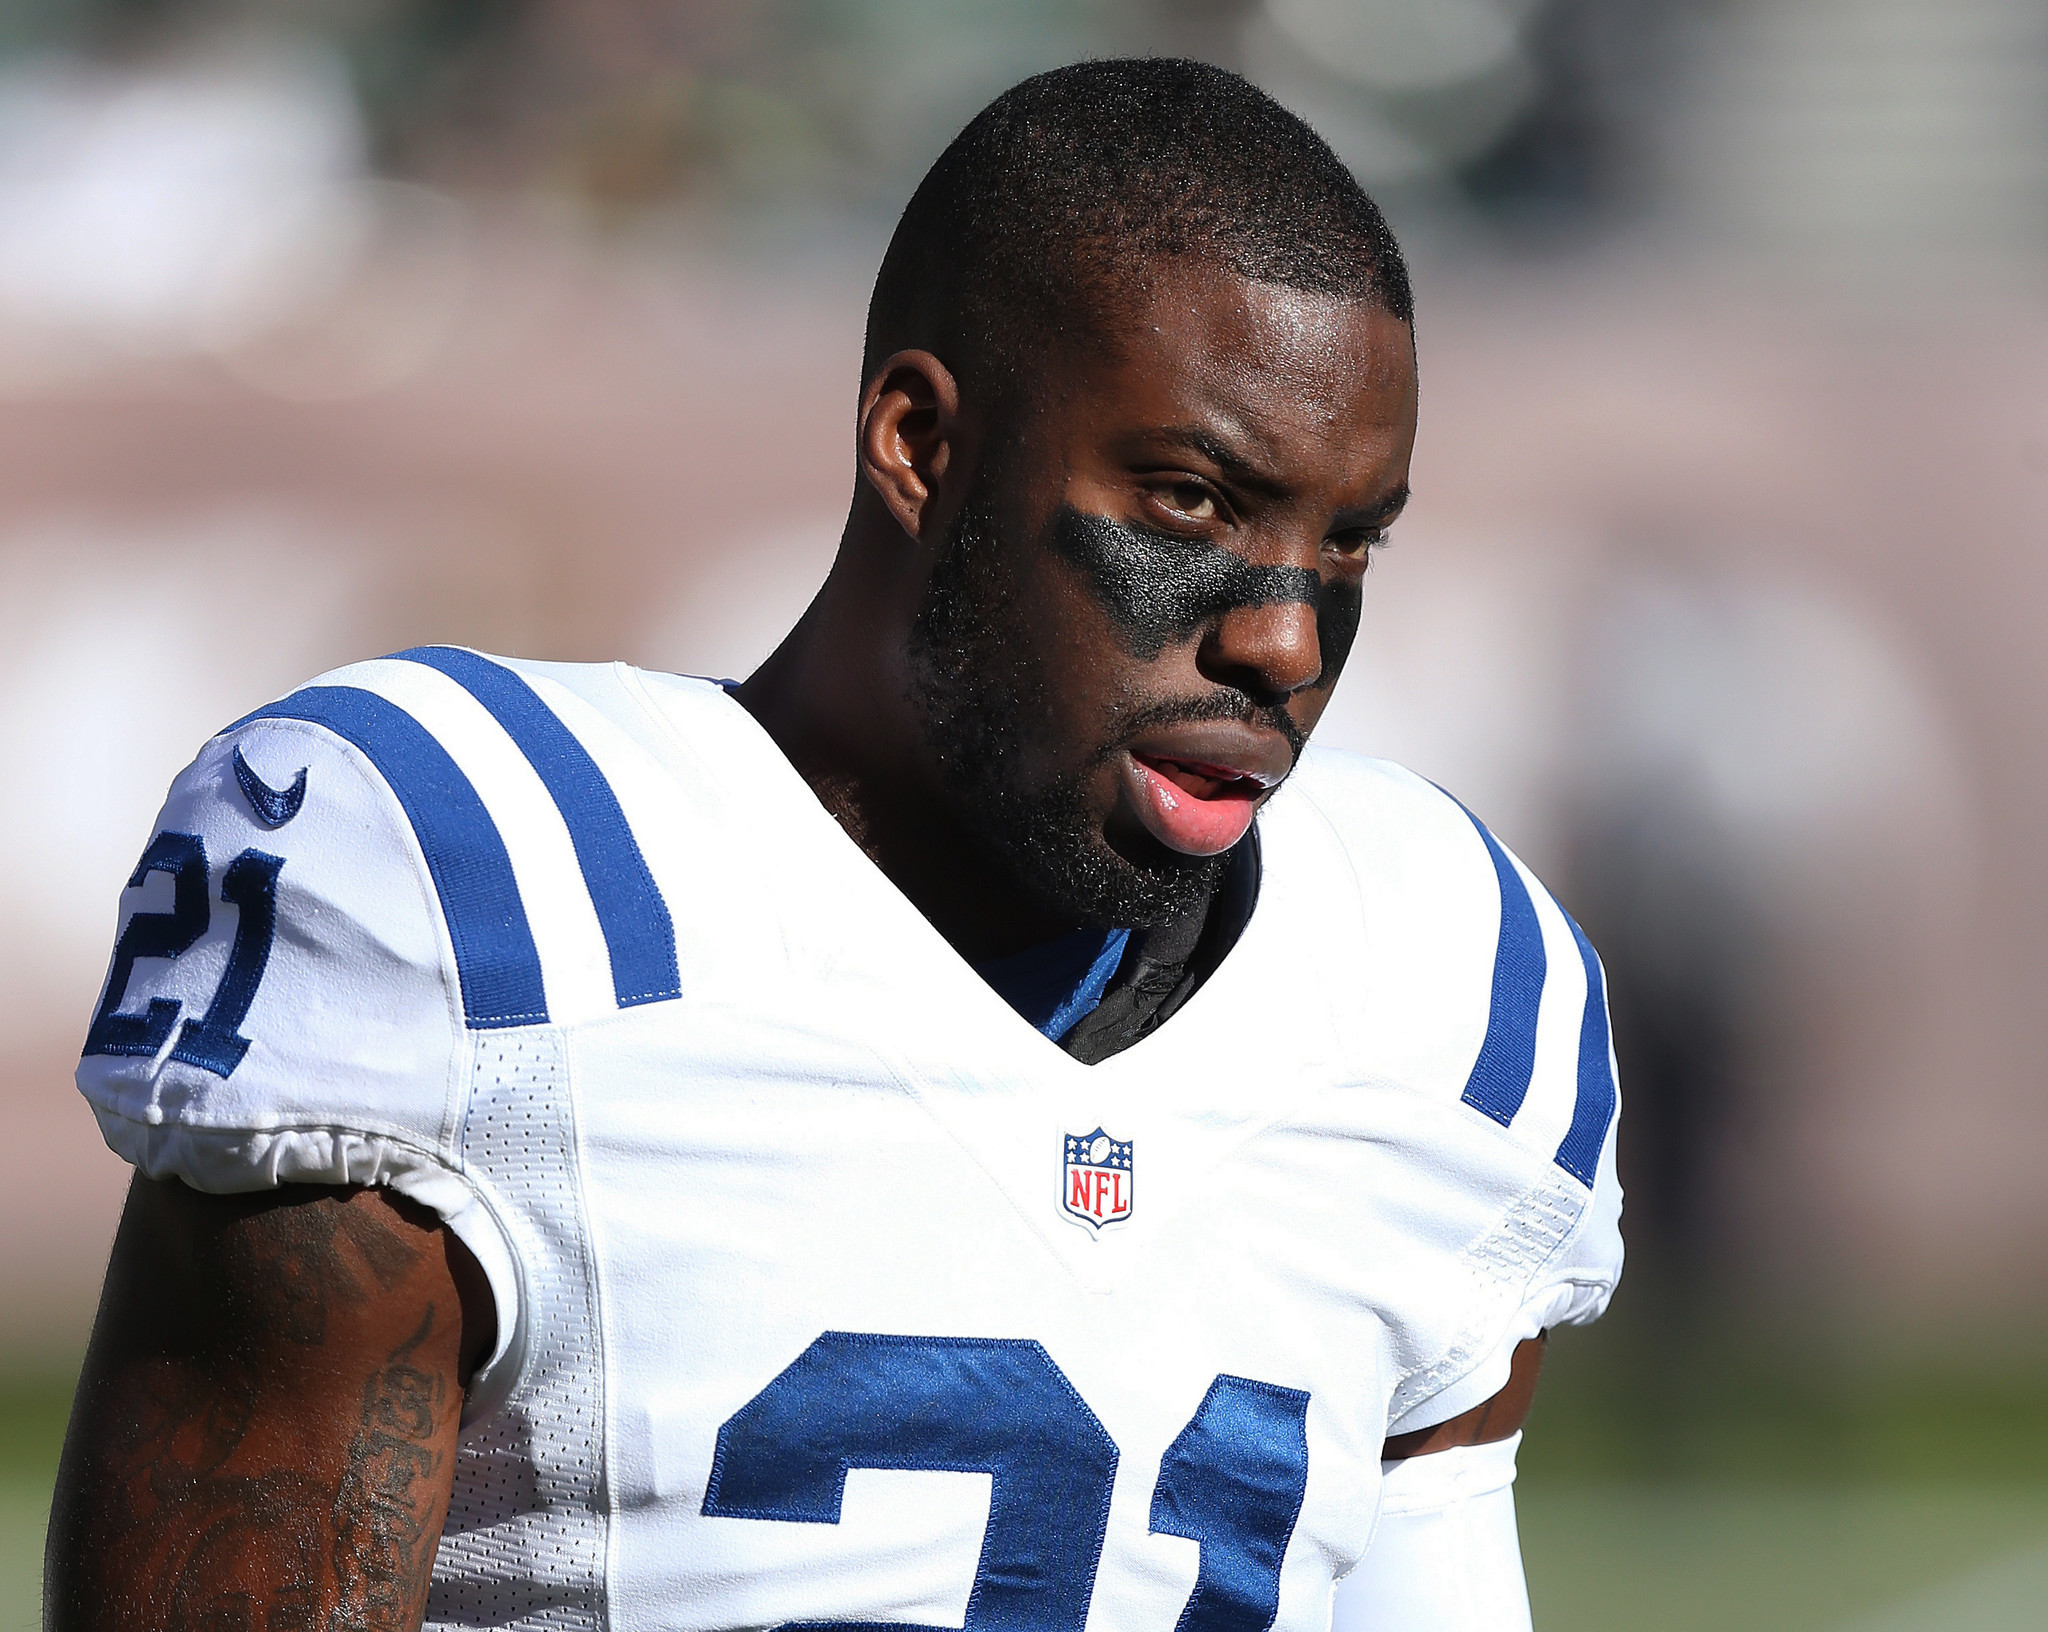 Colts release Vontae Davis after he publicly plained about